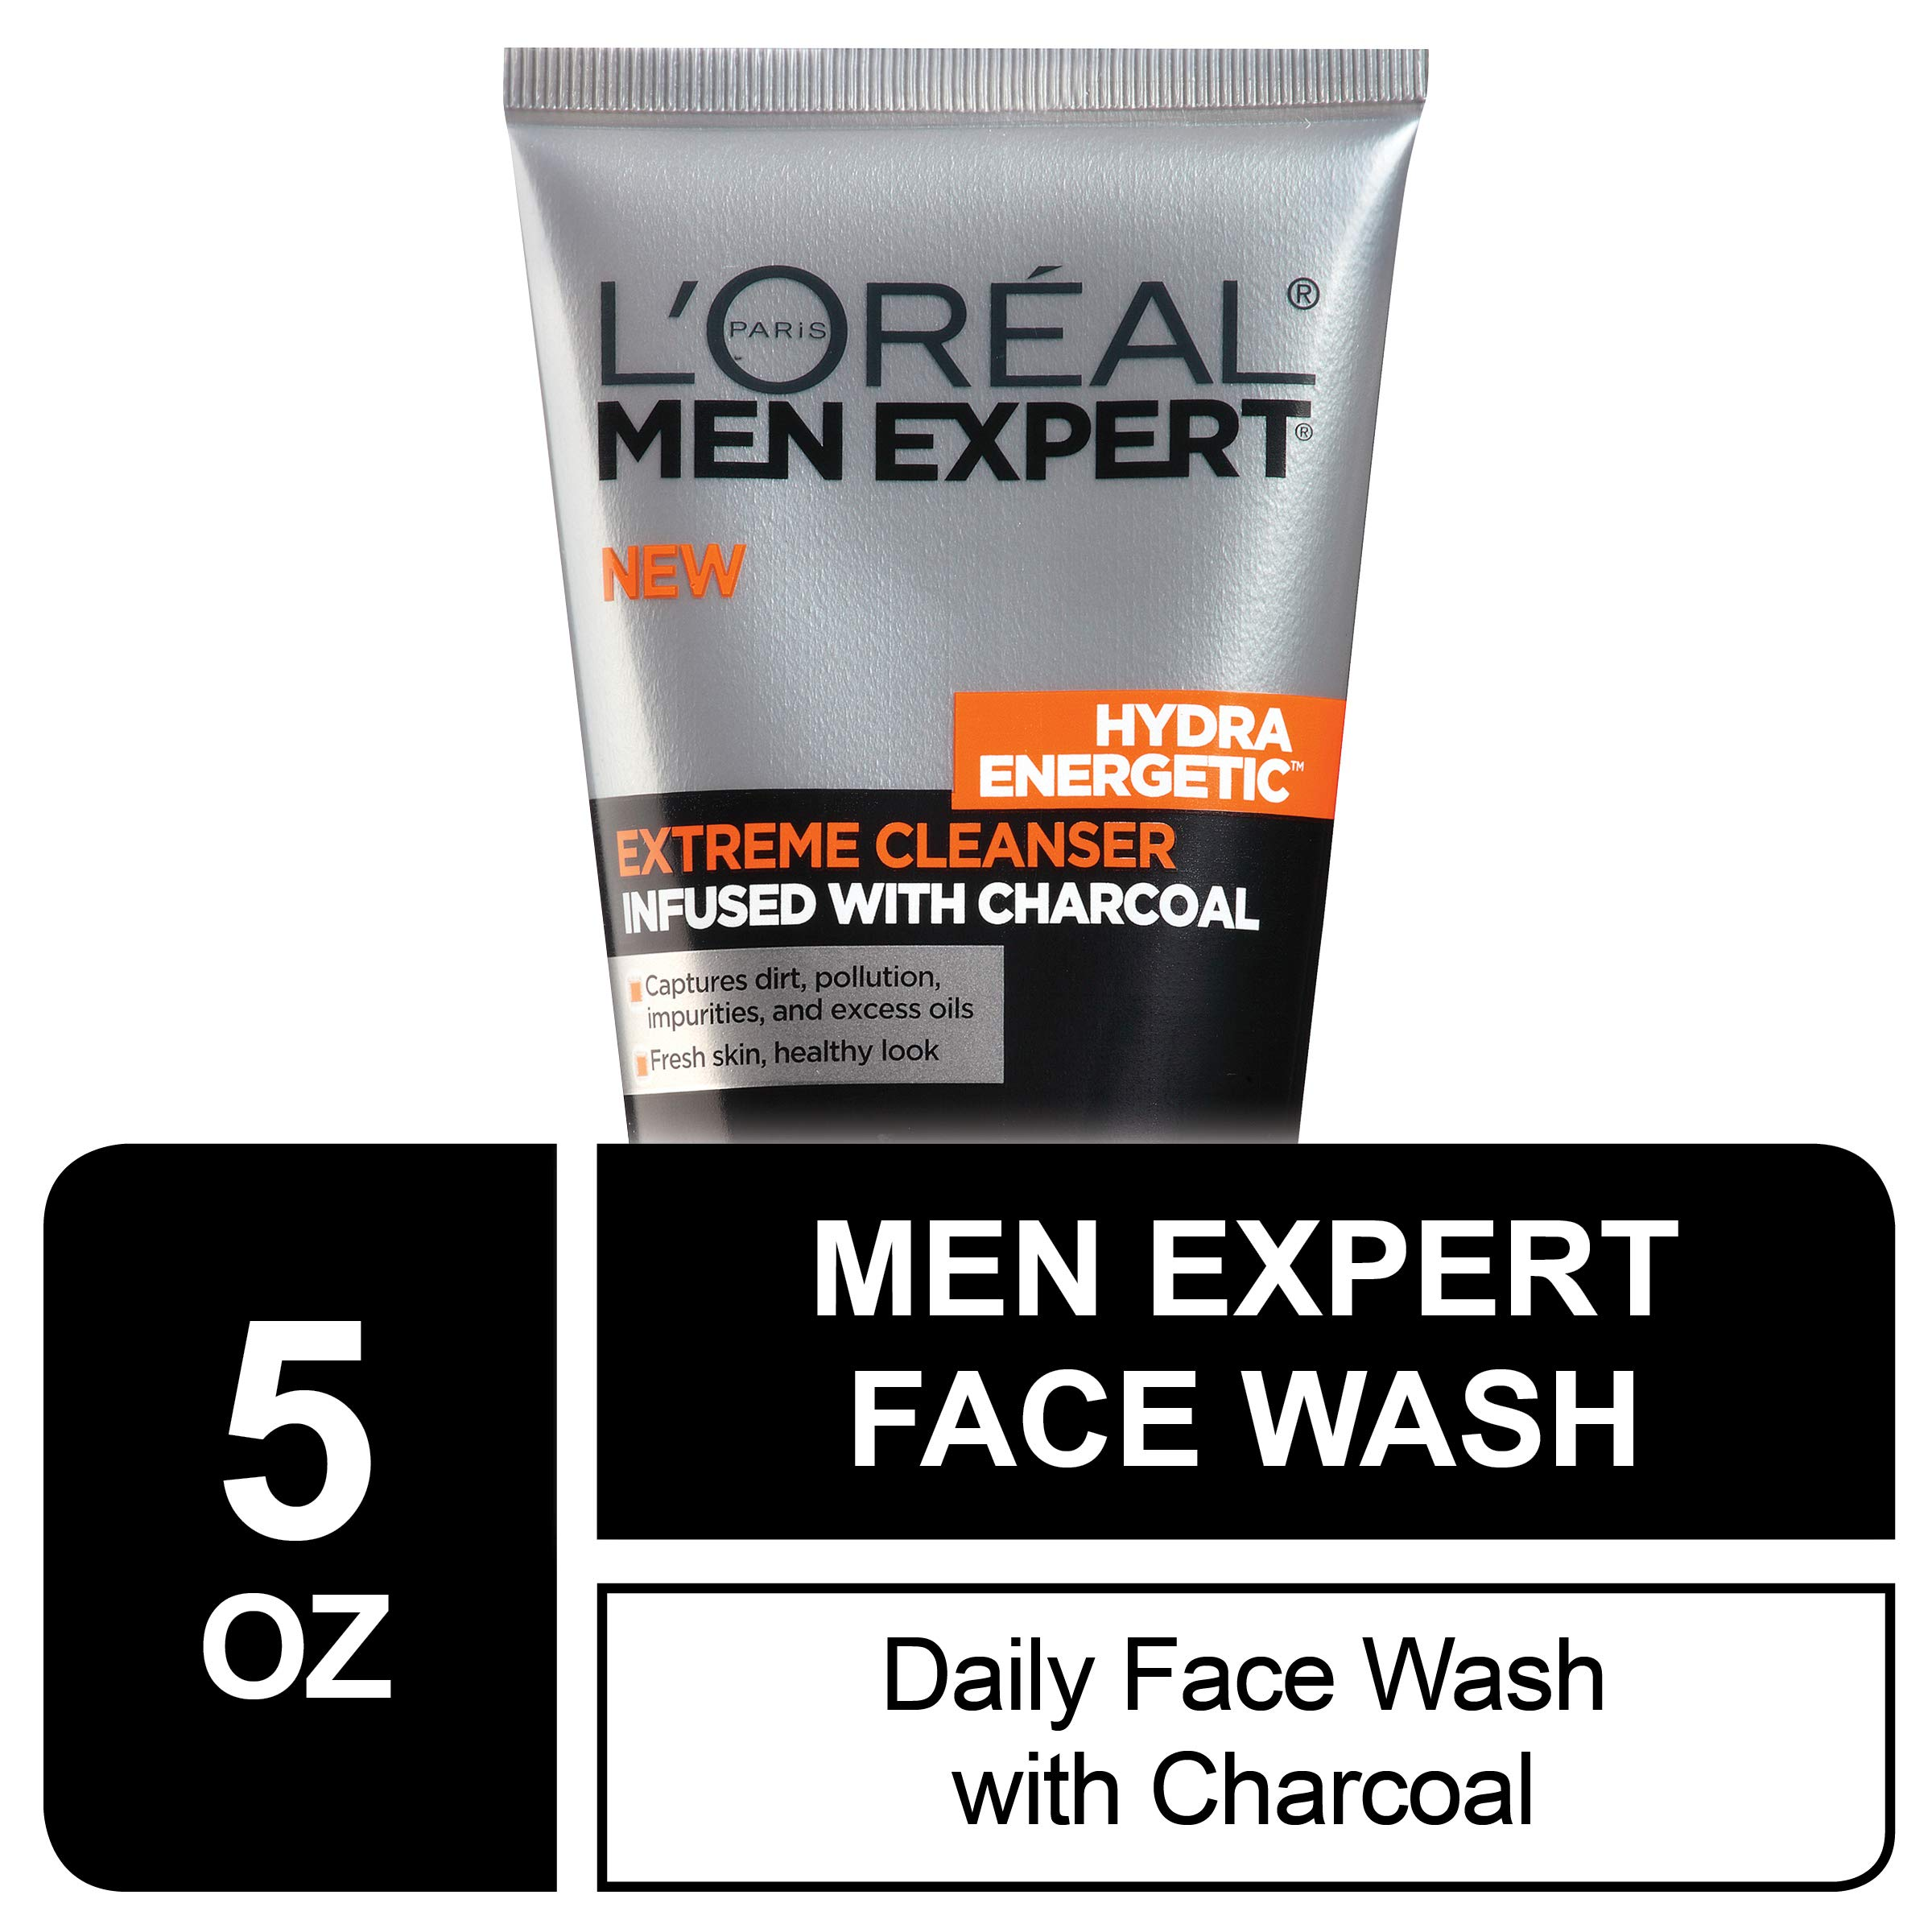 L'Oreal Men Expert Hydra Energetic Facial Cleanser with Charcoal for Daily Face Washing, Mens Face Wash, Beard and Skincare for Men, 5 fl. Oz